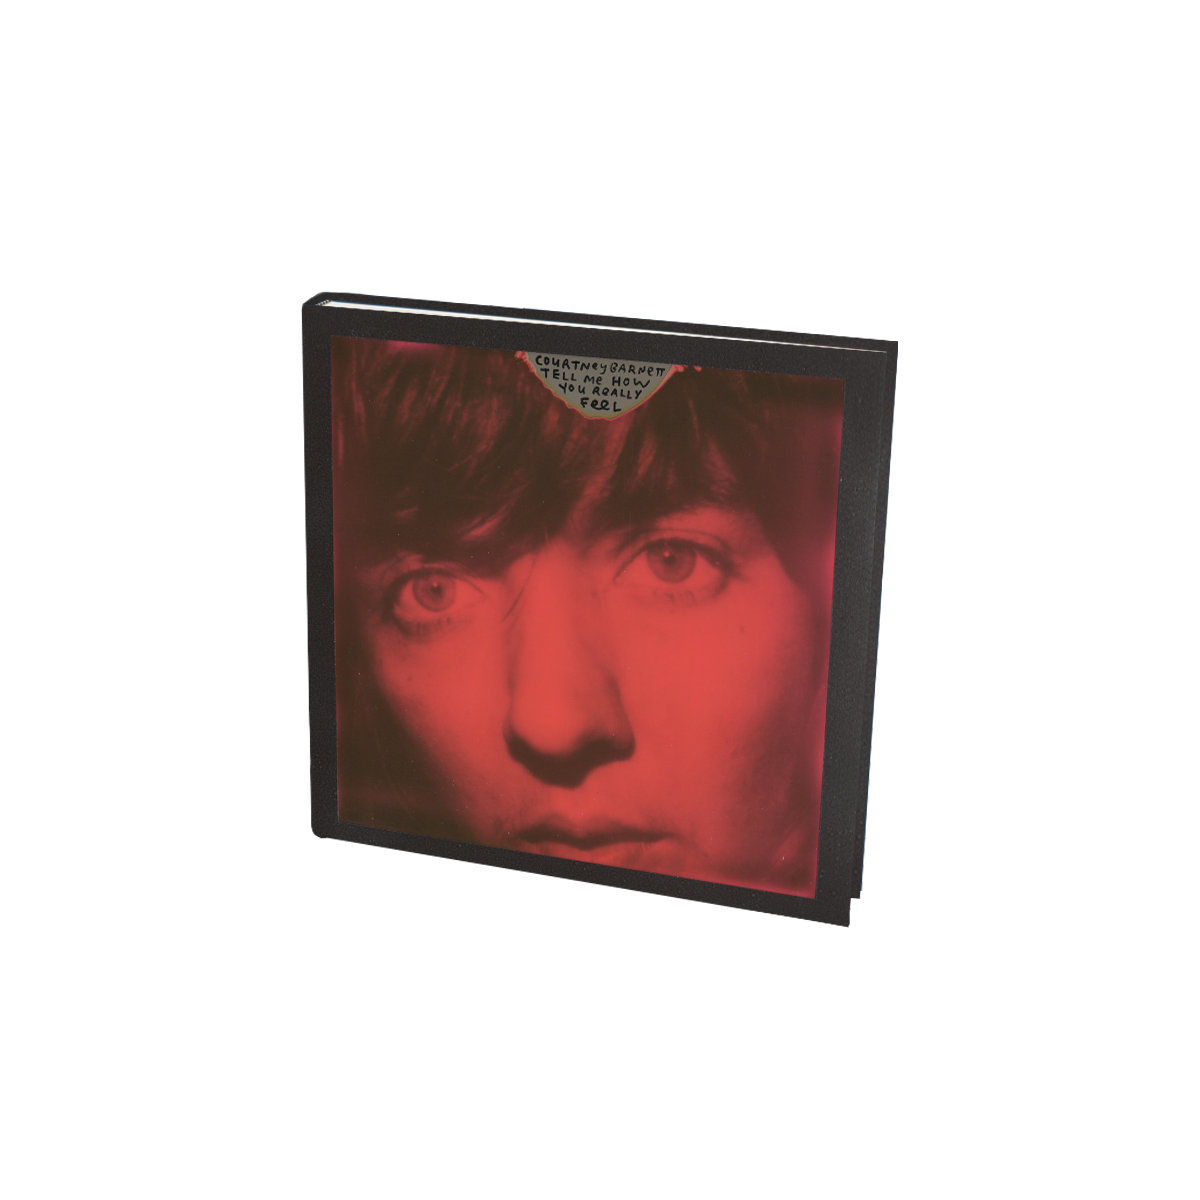 Need a little time courtney barnett deluxe cd limited casebound cd with 24p booklet of photographs and lyrics socks 3 colour thread red sock with album title logo malvernweather Image collections